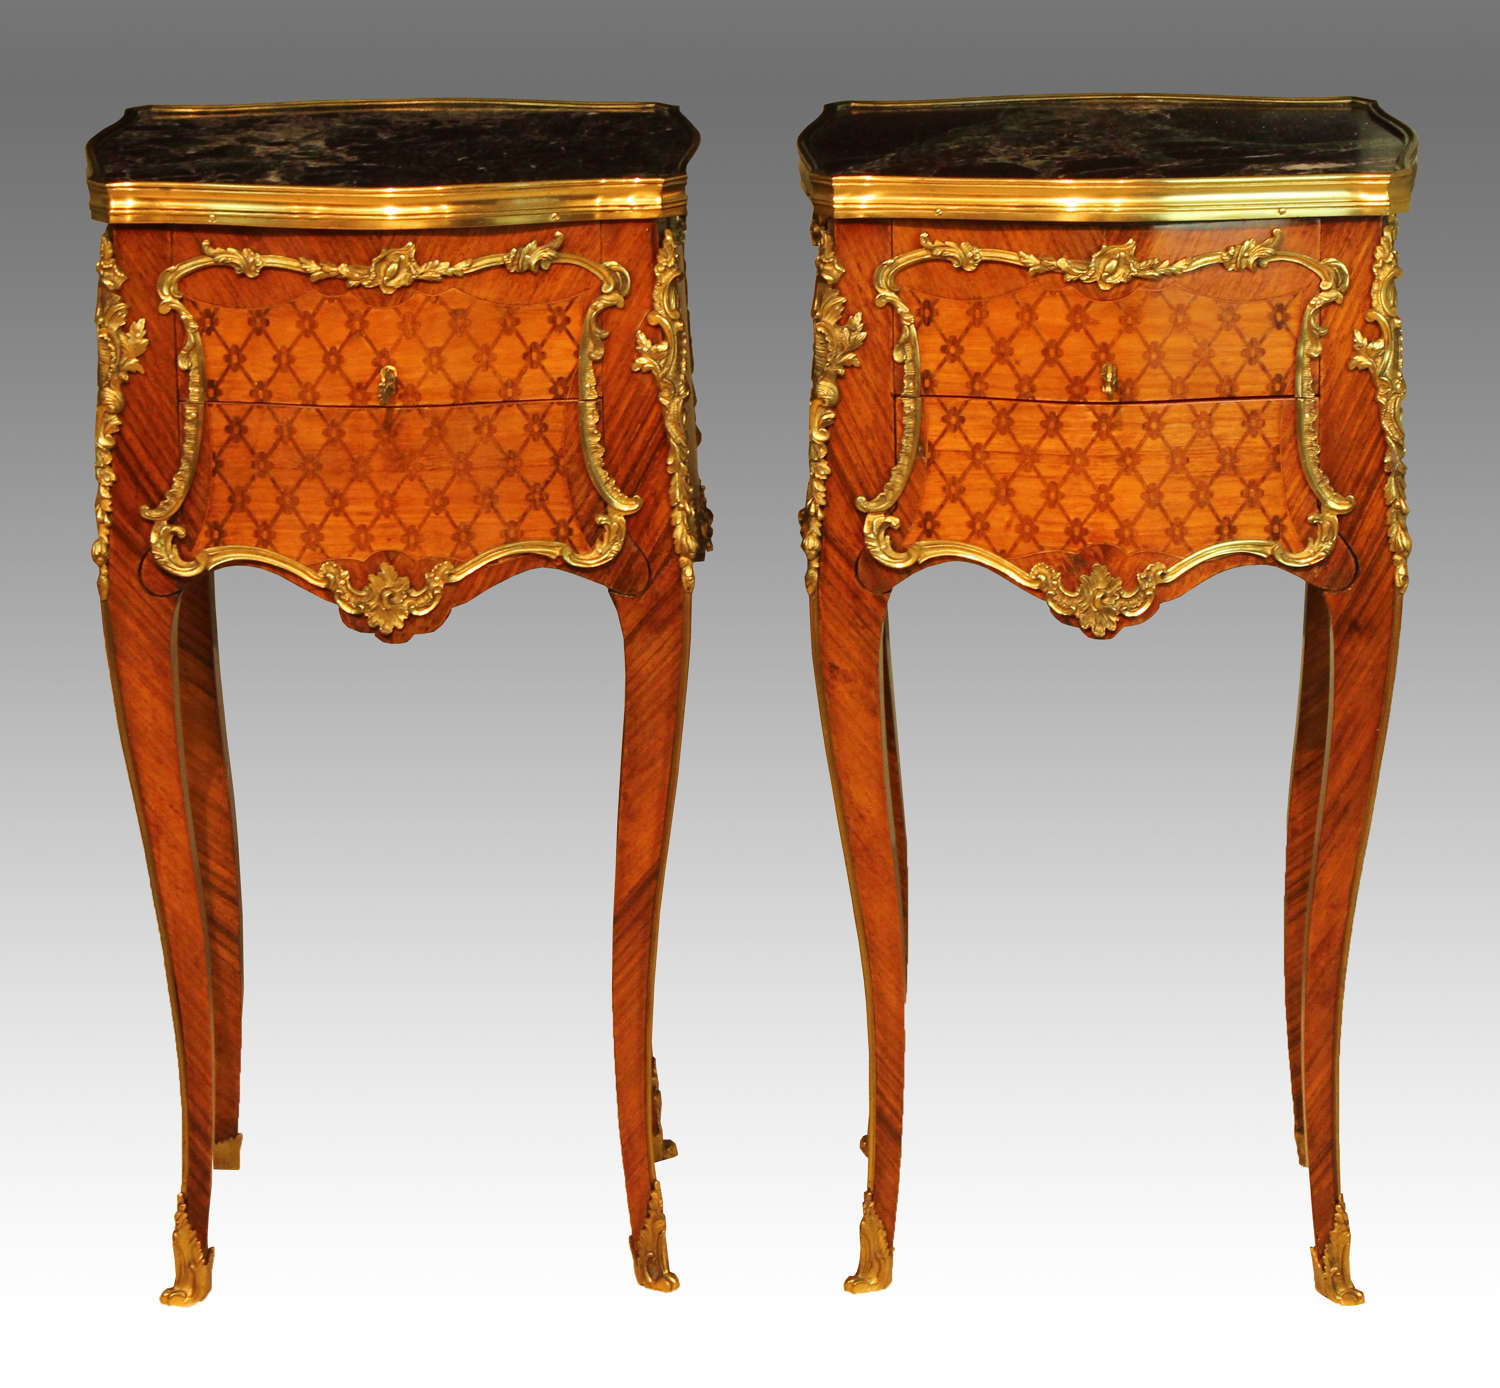 A Pair French Kingwood Inlaid & Ormolu mounted Bedside Tables